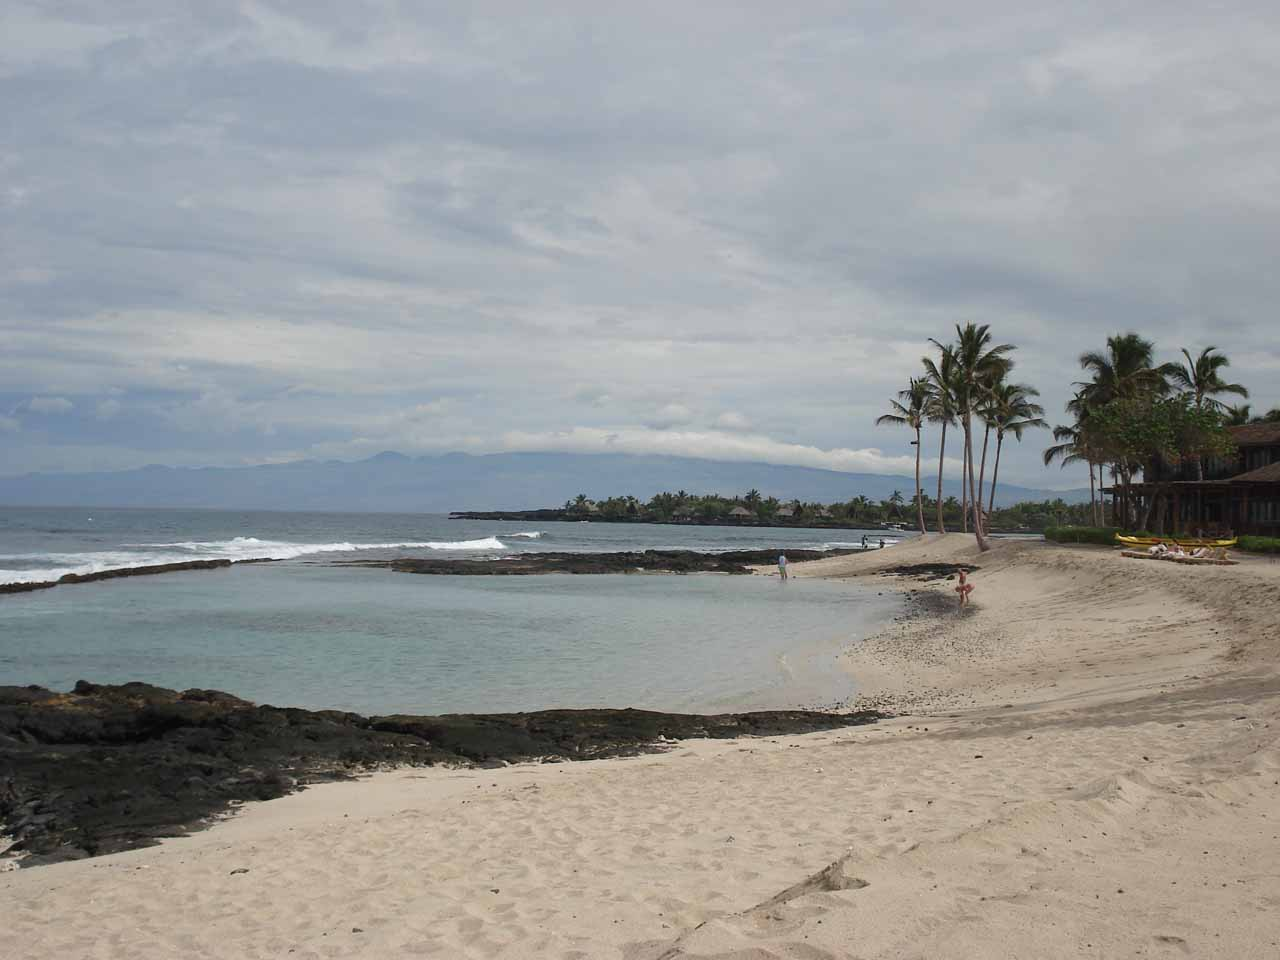 On the leeward side of the Big Island, that was where all the touristy resorts were, including this one at the Four Seasons Waikoloa, where there was also a nice little beach